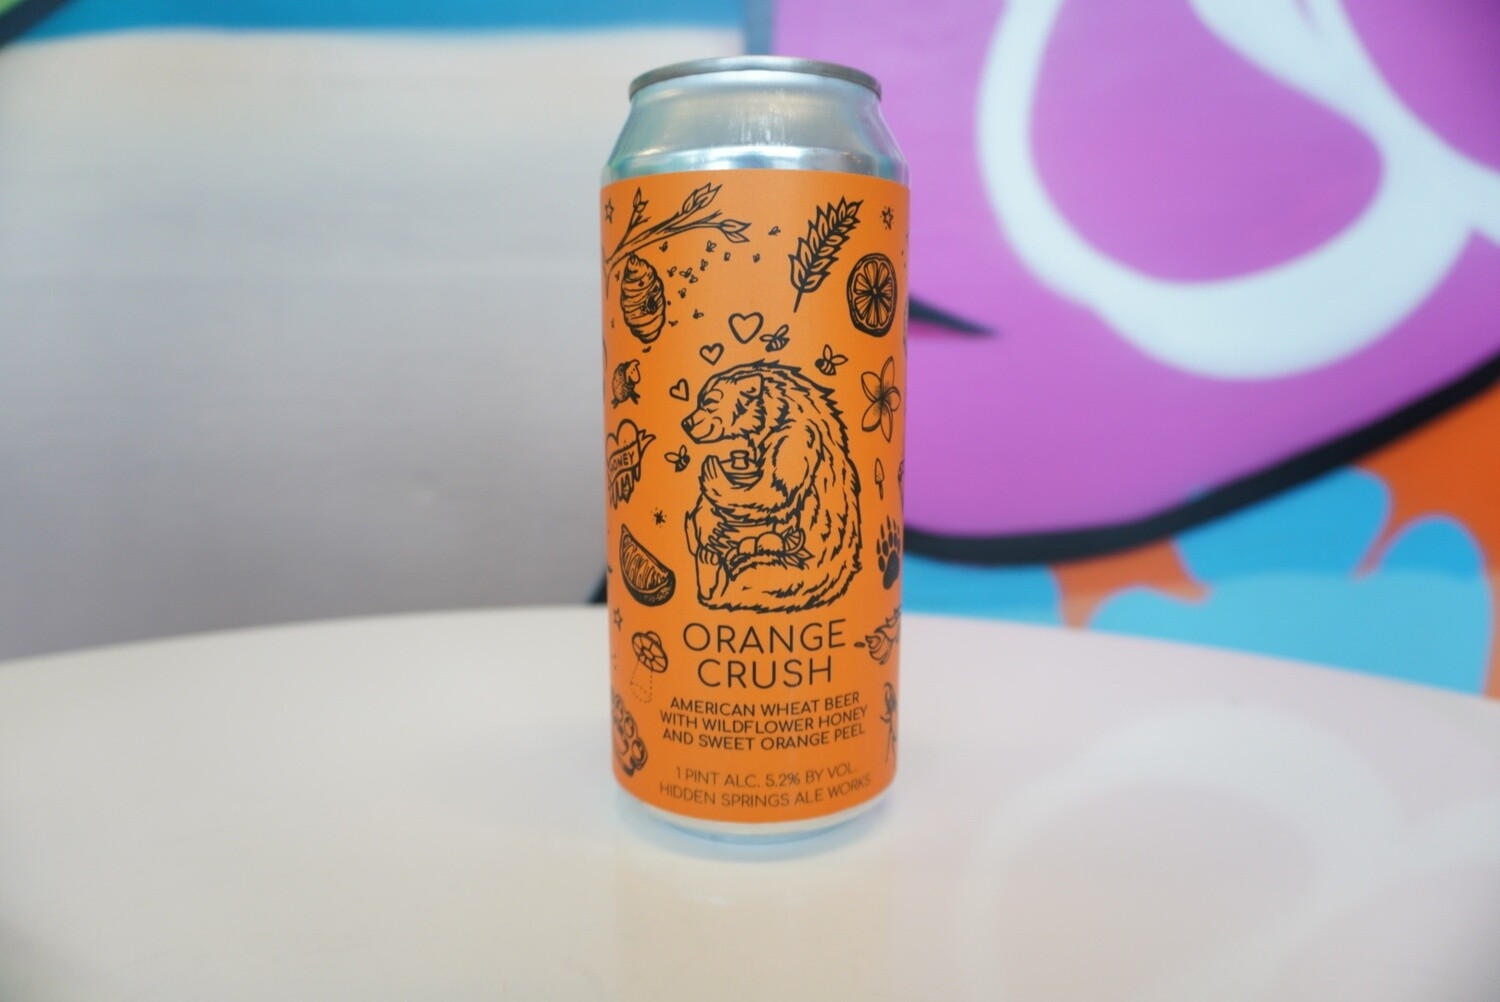 Hidden Springs Ale Works - Orange Crush - Wheat - 5.7% - 16oz Can